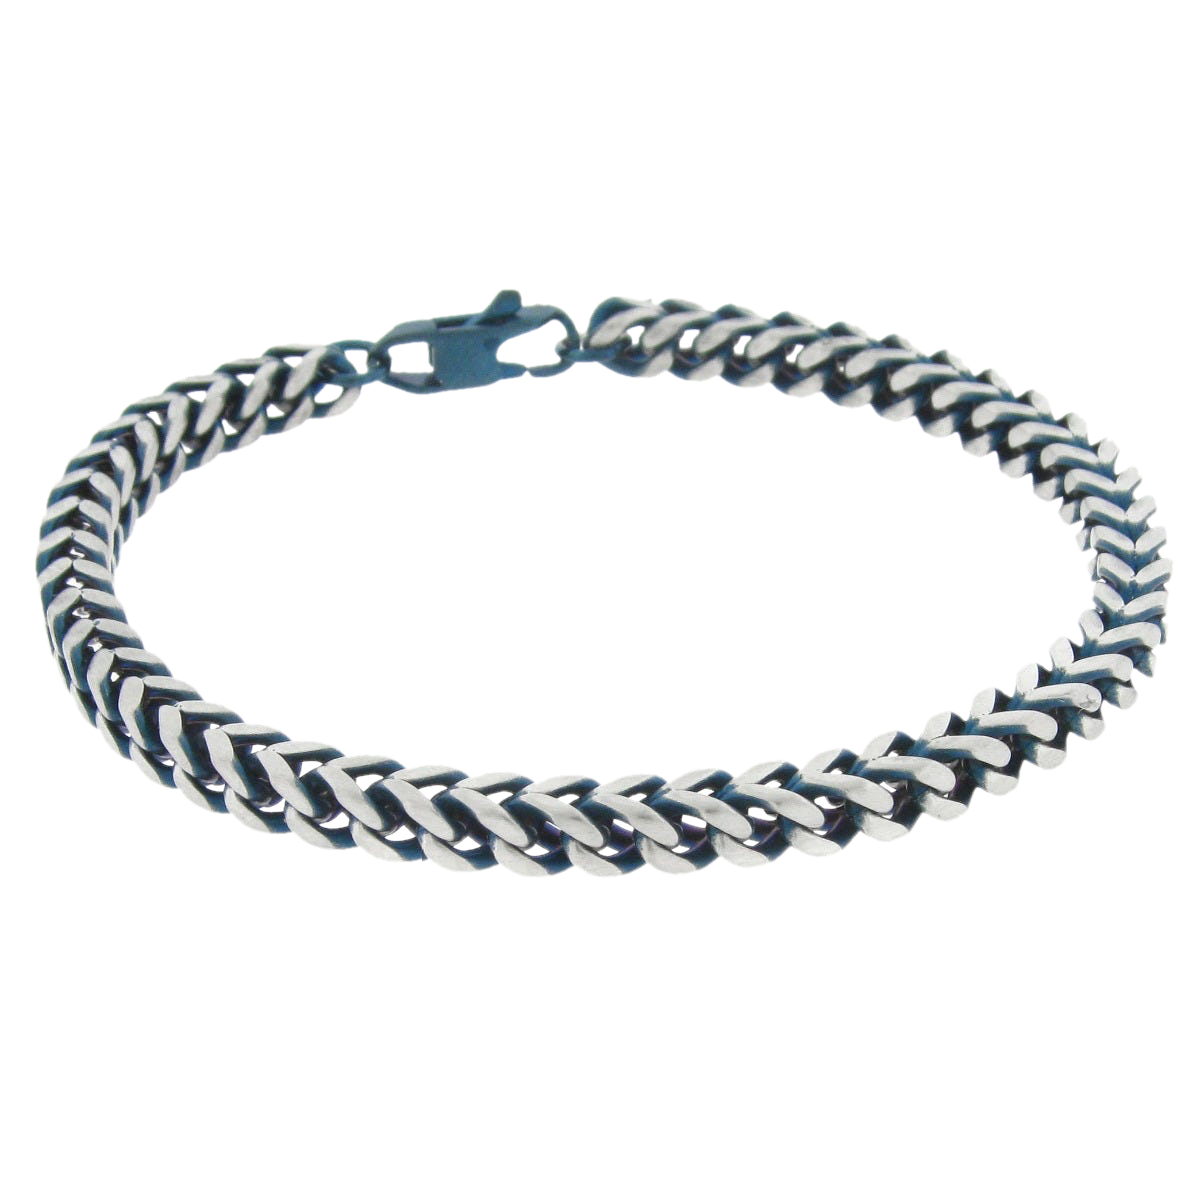 https://rogersandhollands.com/mens-stainless-steel-curb-link-bracelet-85